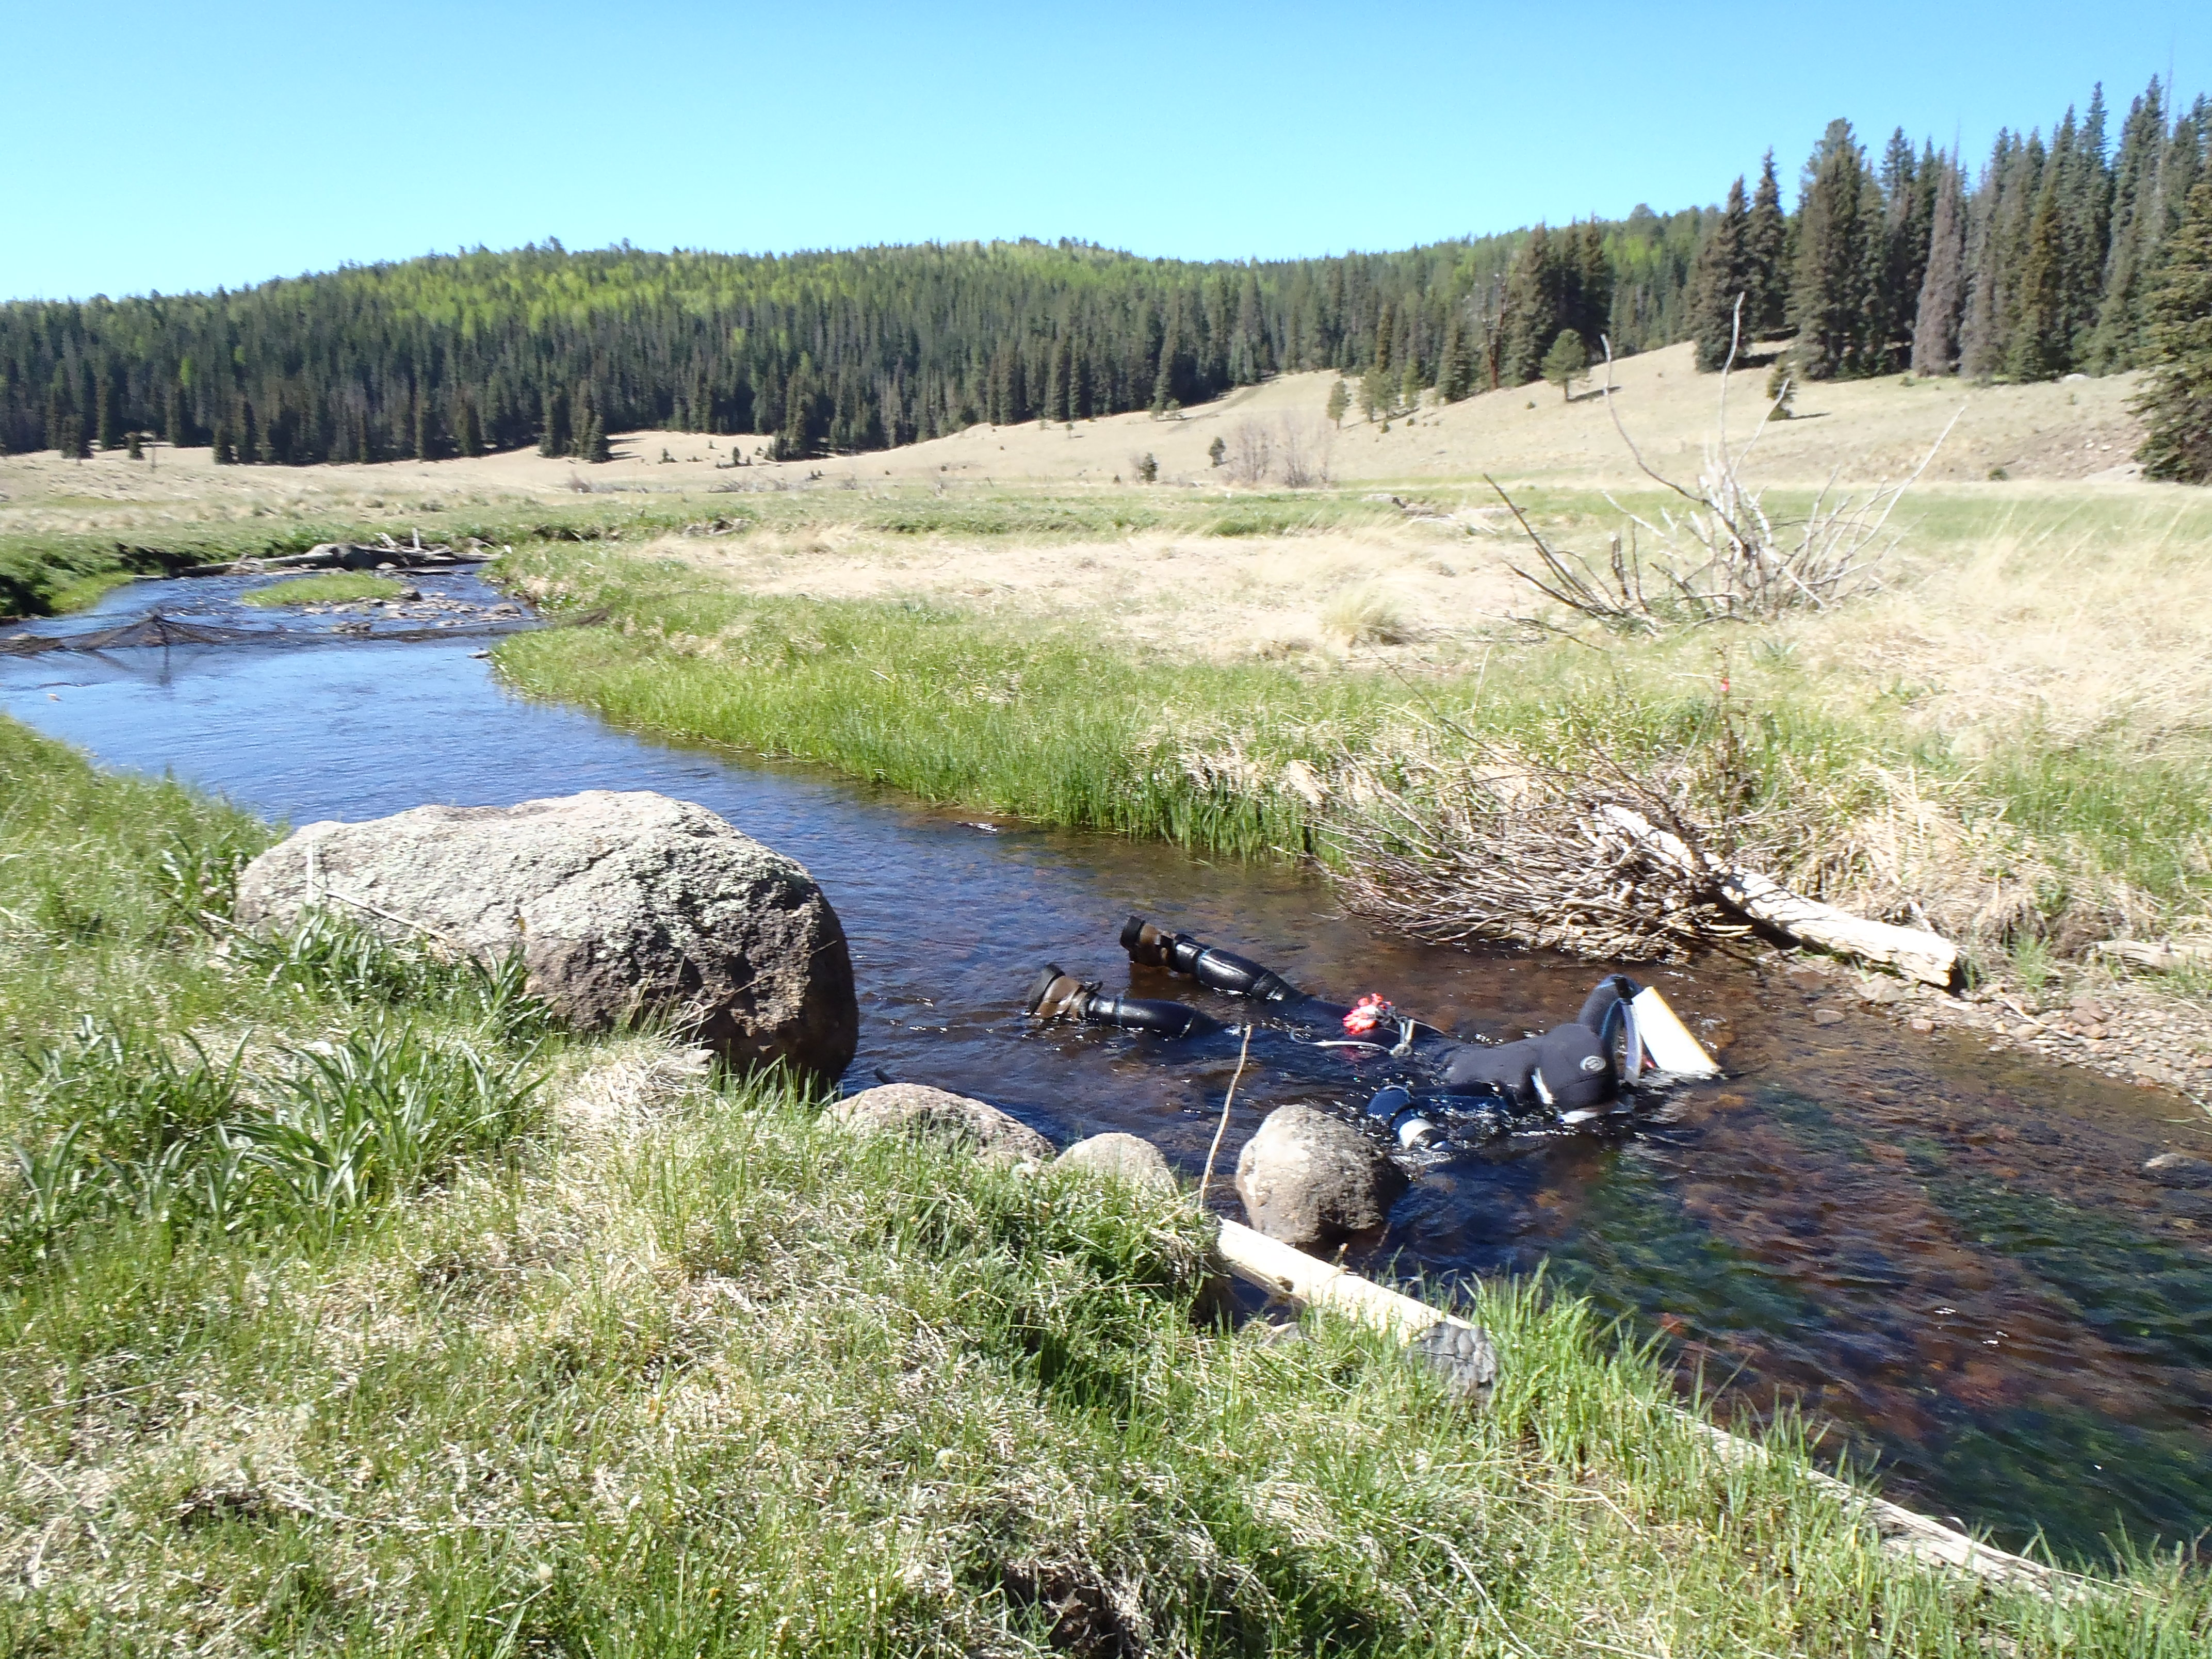 Arizona Coop Unit snorkeling in an Arizona mountain stream to enumerate Apache Trout.